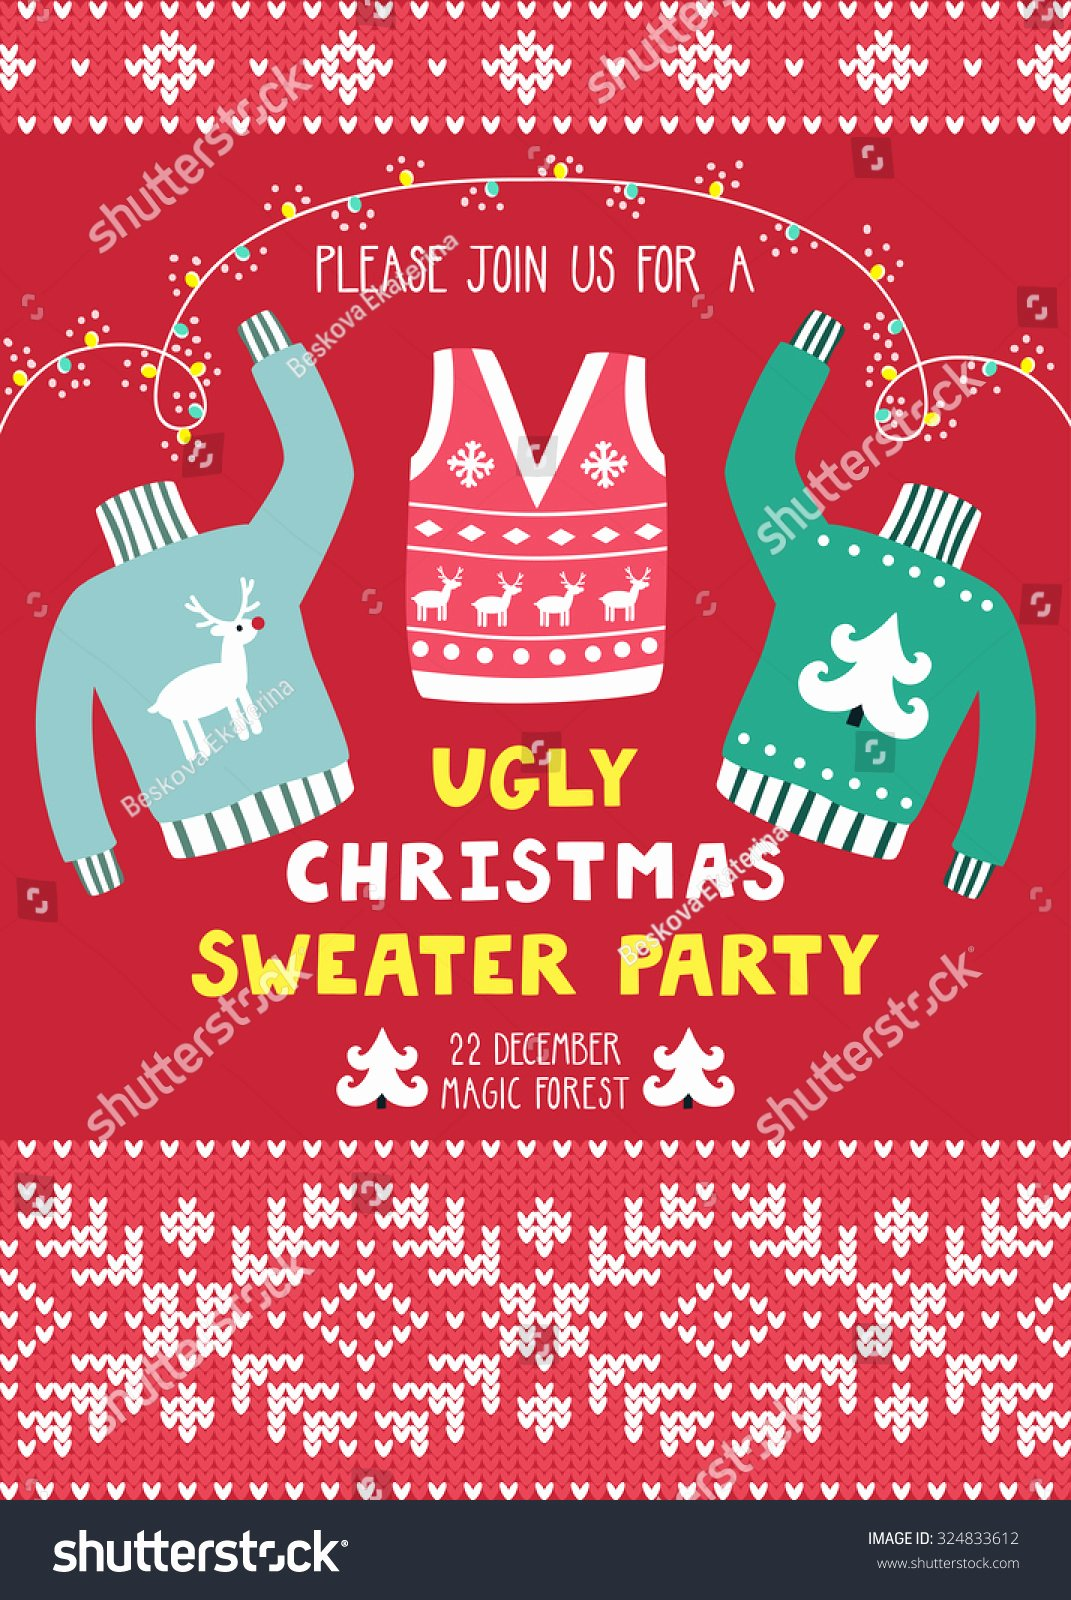 Ugly Sweater Invitation Template Free New Vector Invitation Template with Ugly Sweaters